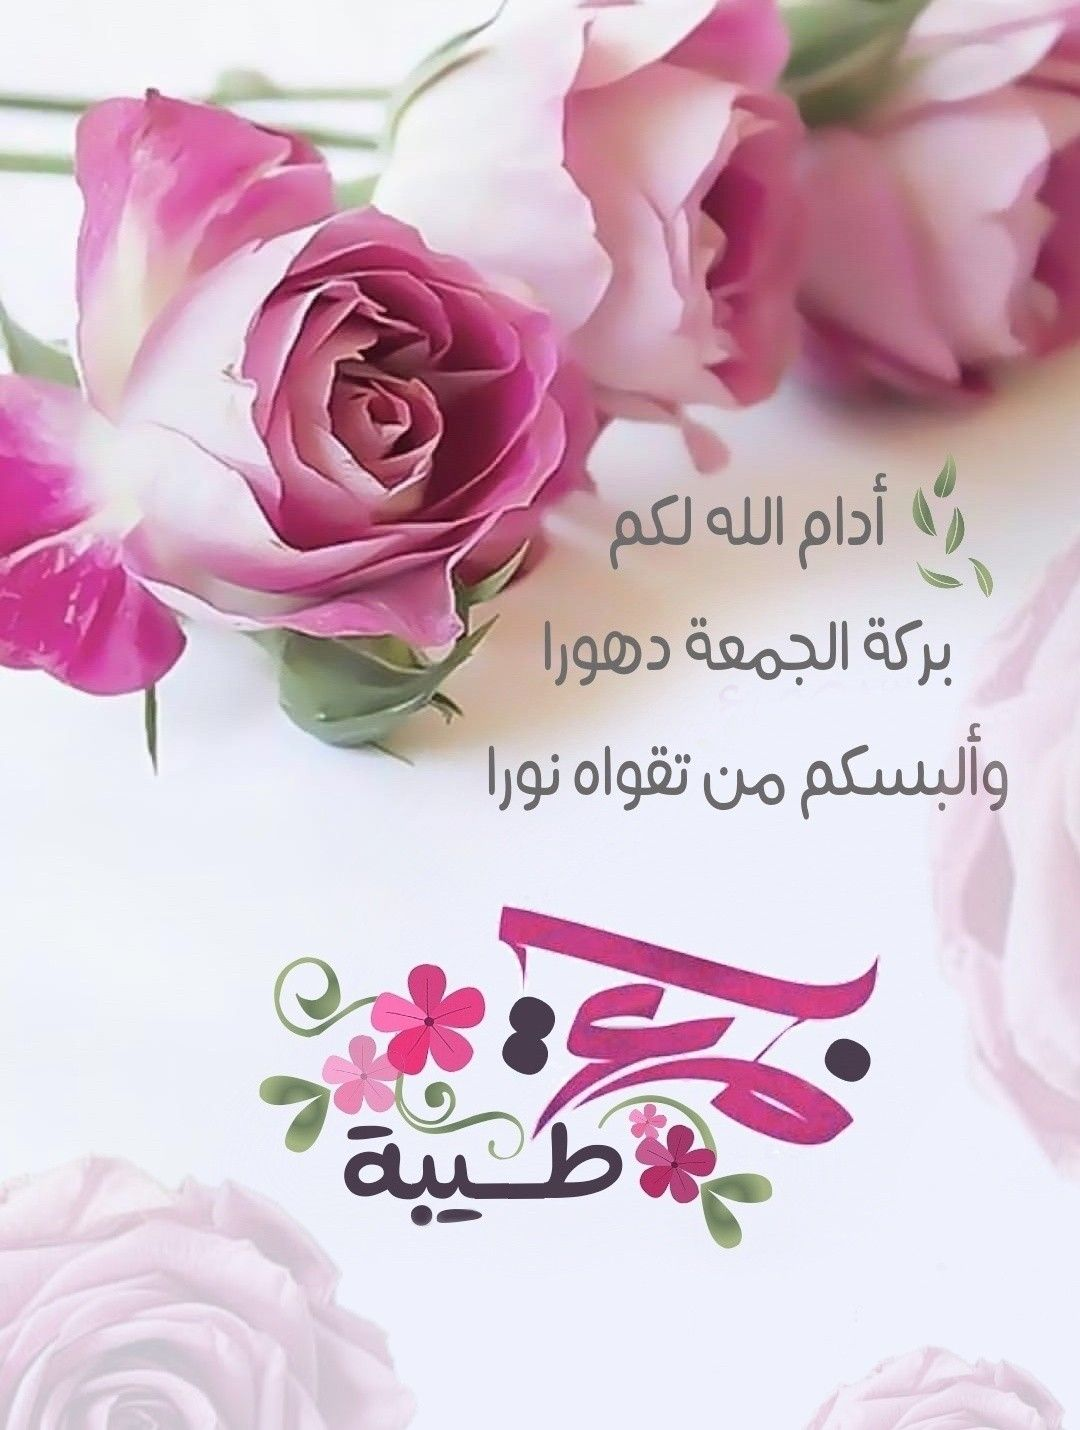 Pin By Fatima Omar On صباح الخير Floral Wallpaper Phone Beautiful Morning Messages Blessed Friday